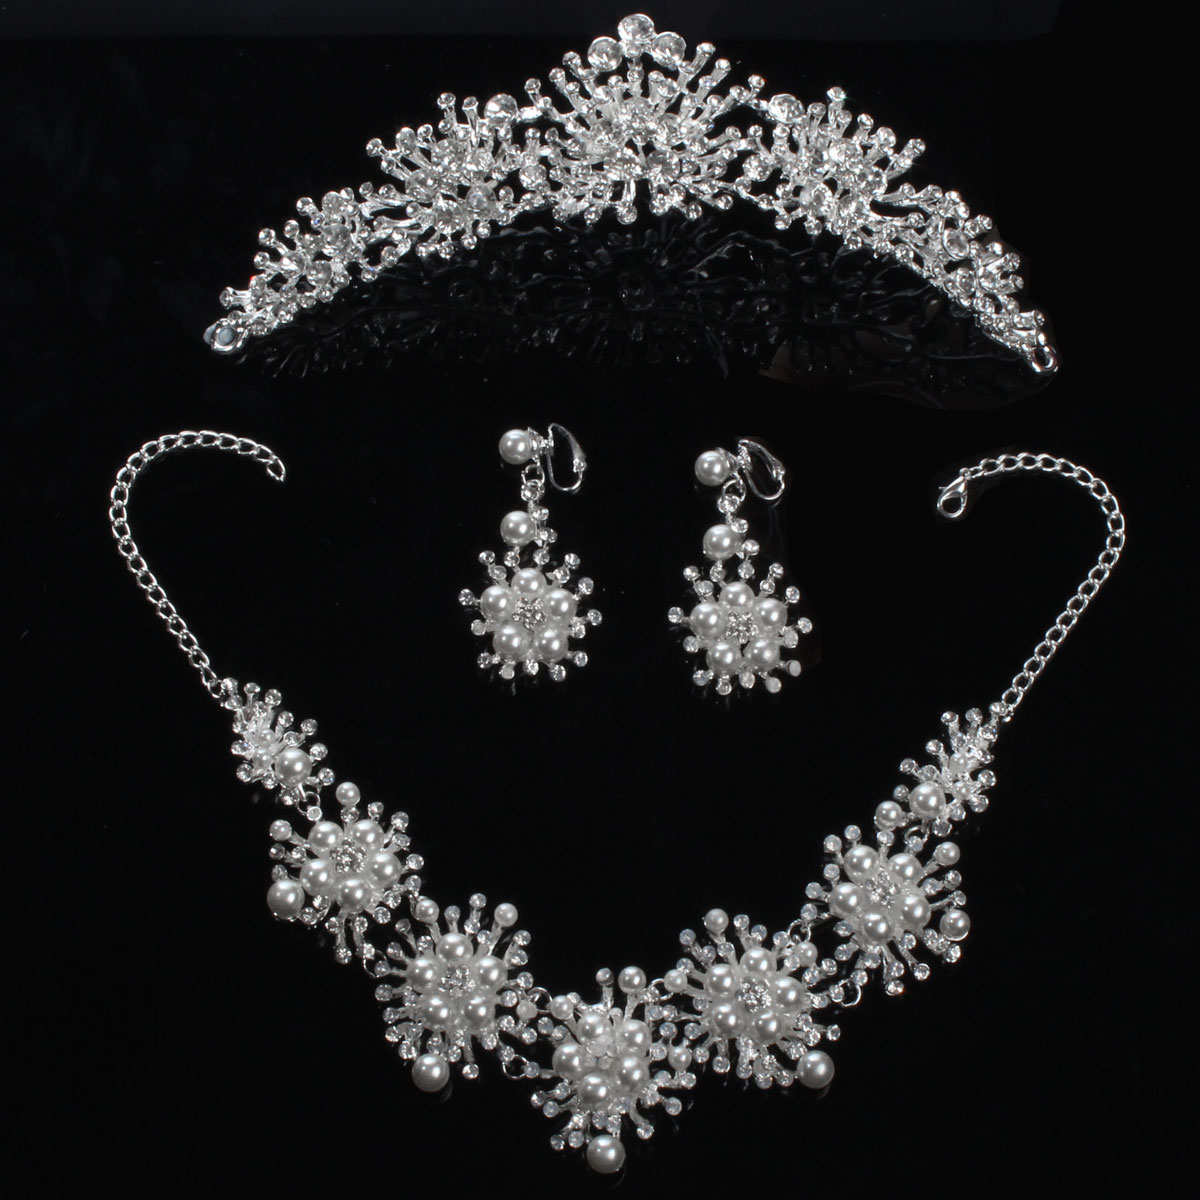 Bride Rhinestone Pearl Crown Necklace Earrings Bridal Wedding Jewelry Set Dress Accessories